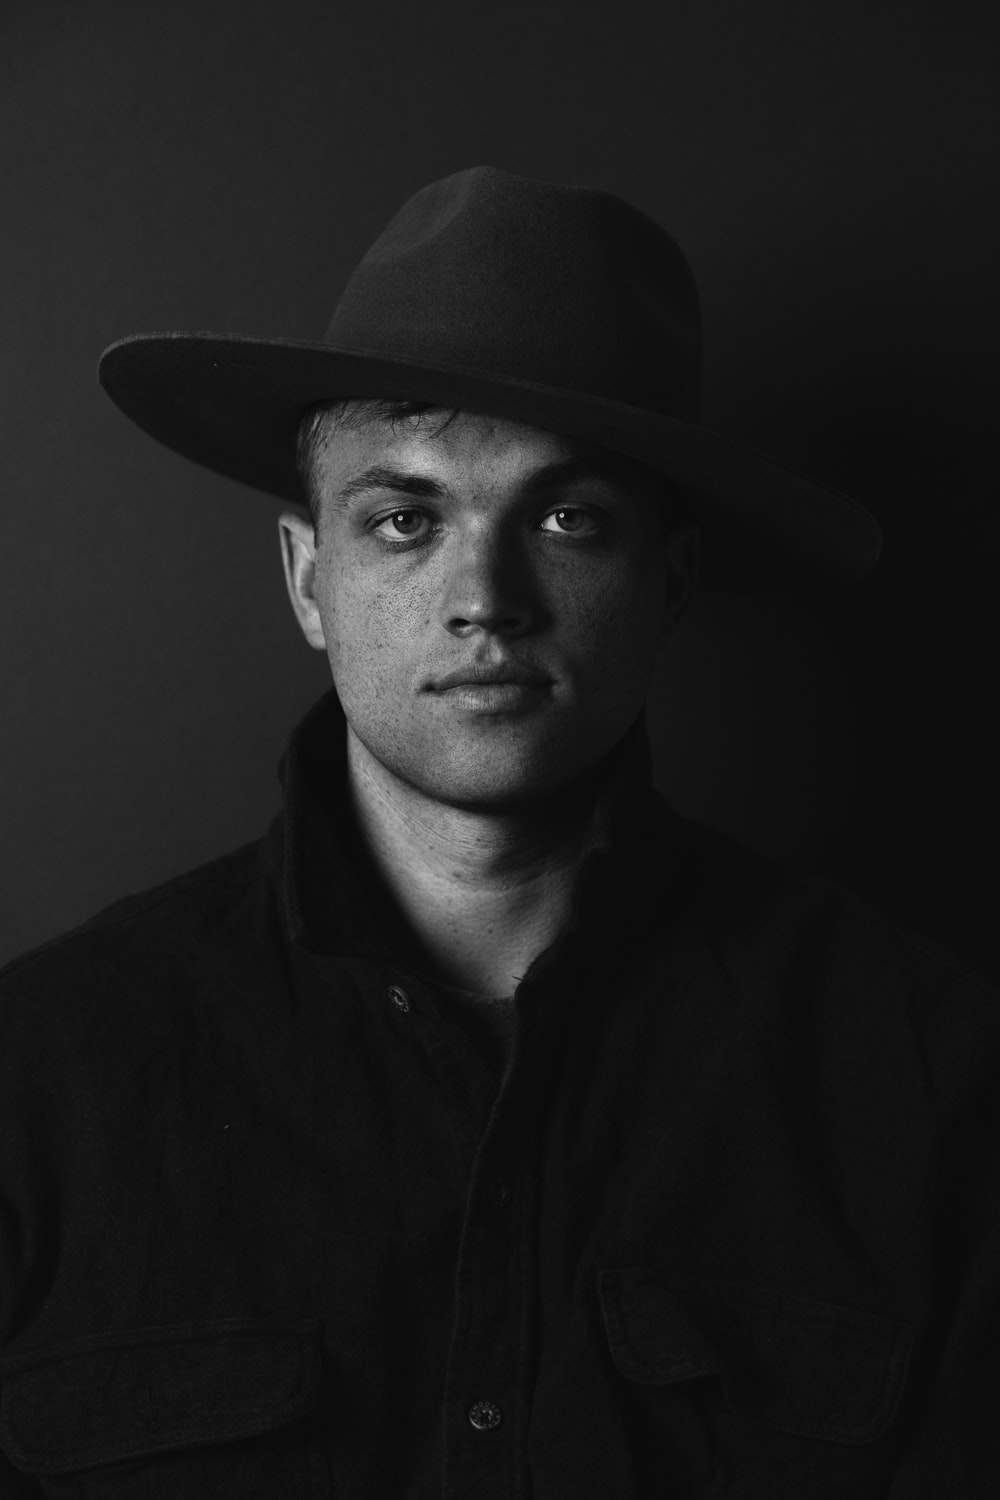 man in black hat and black button up shirt